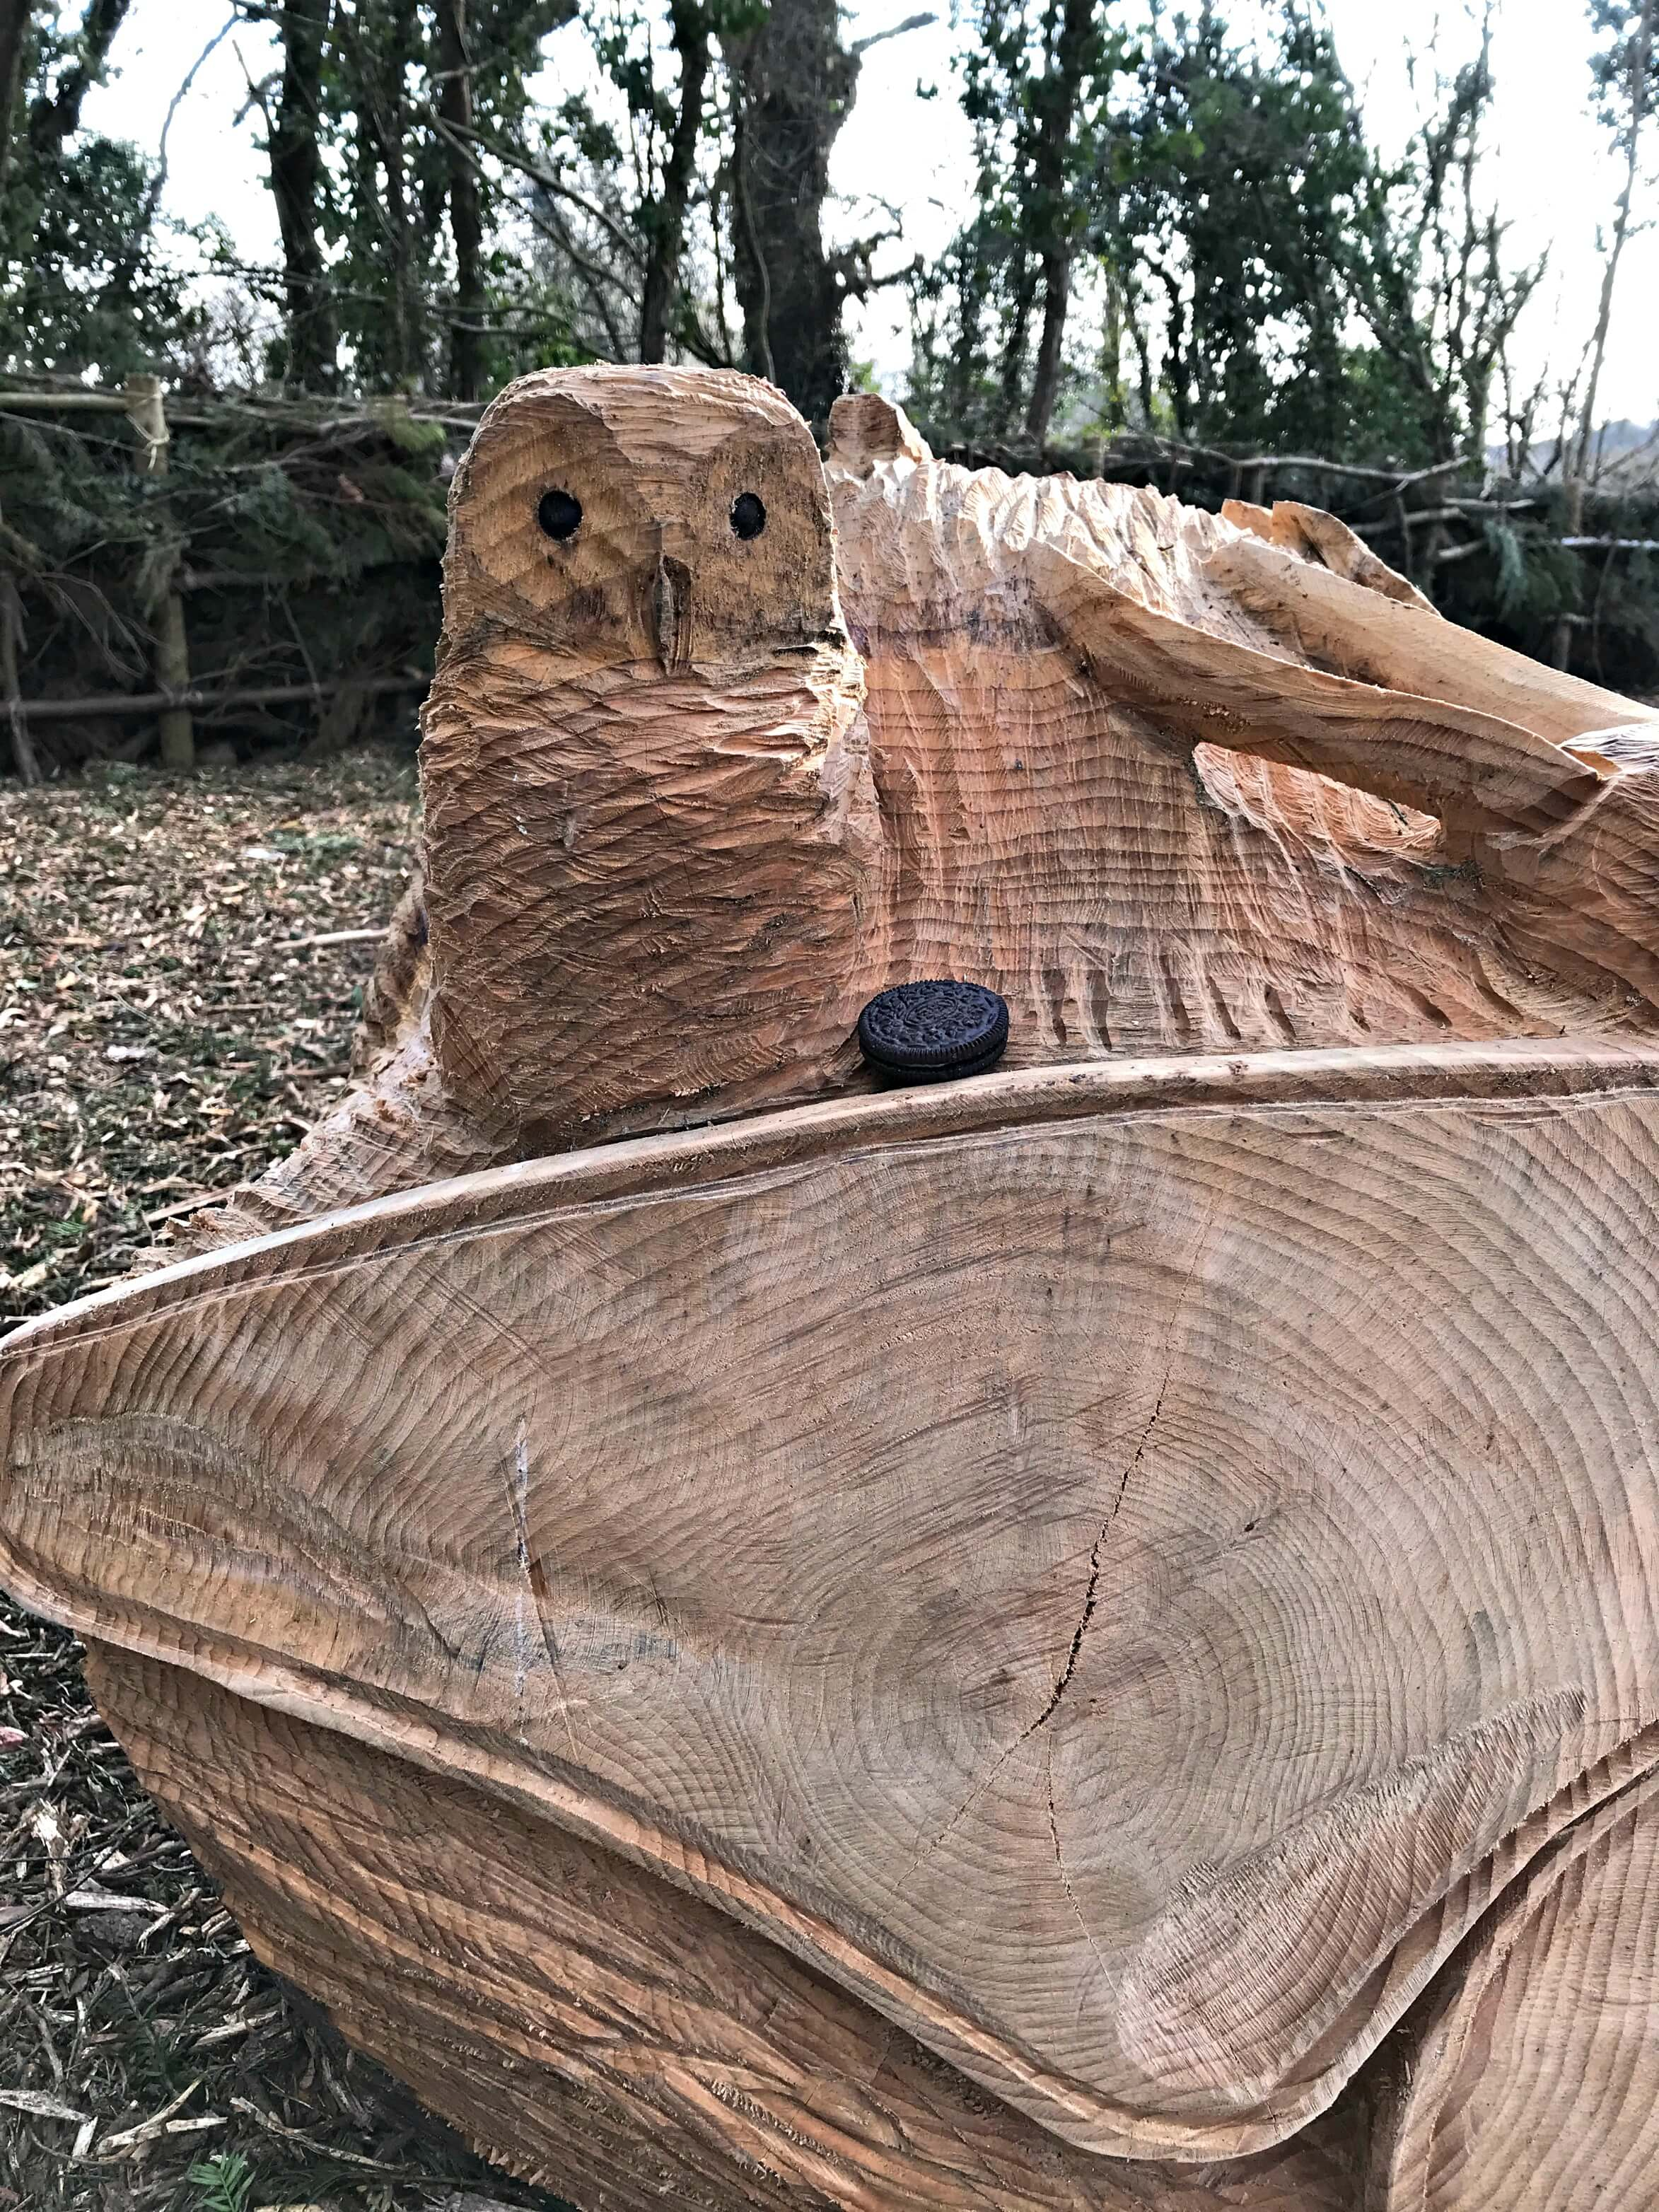 Carved owl in the new play area at Dyffryn Gardens on our Oreo Cookie Quest